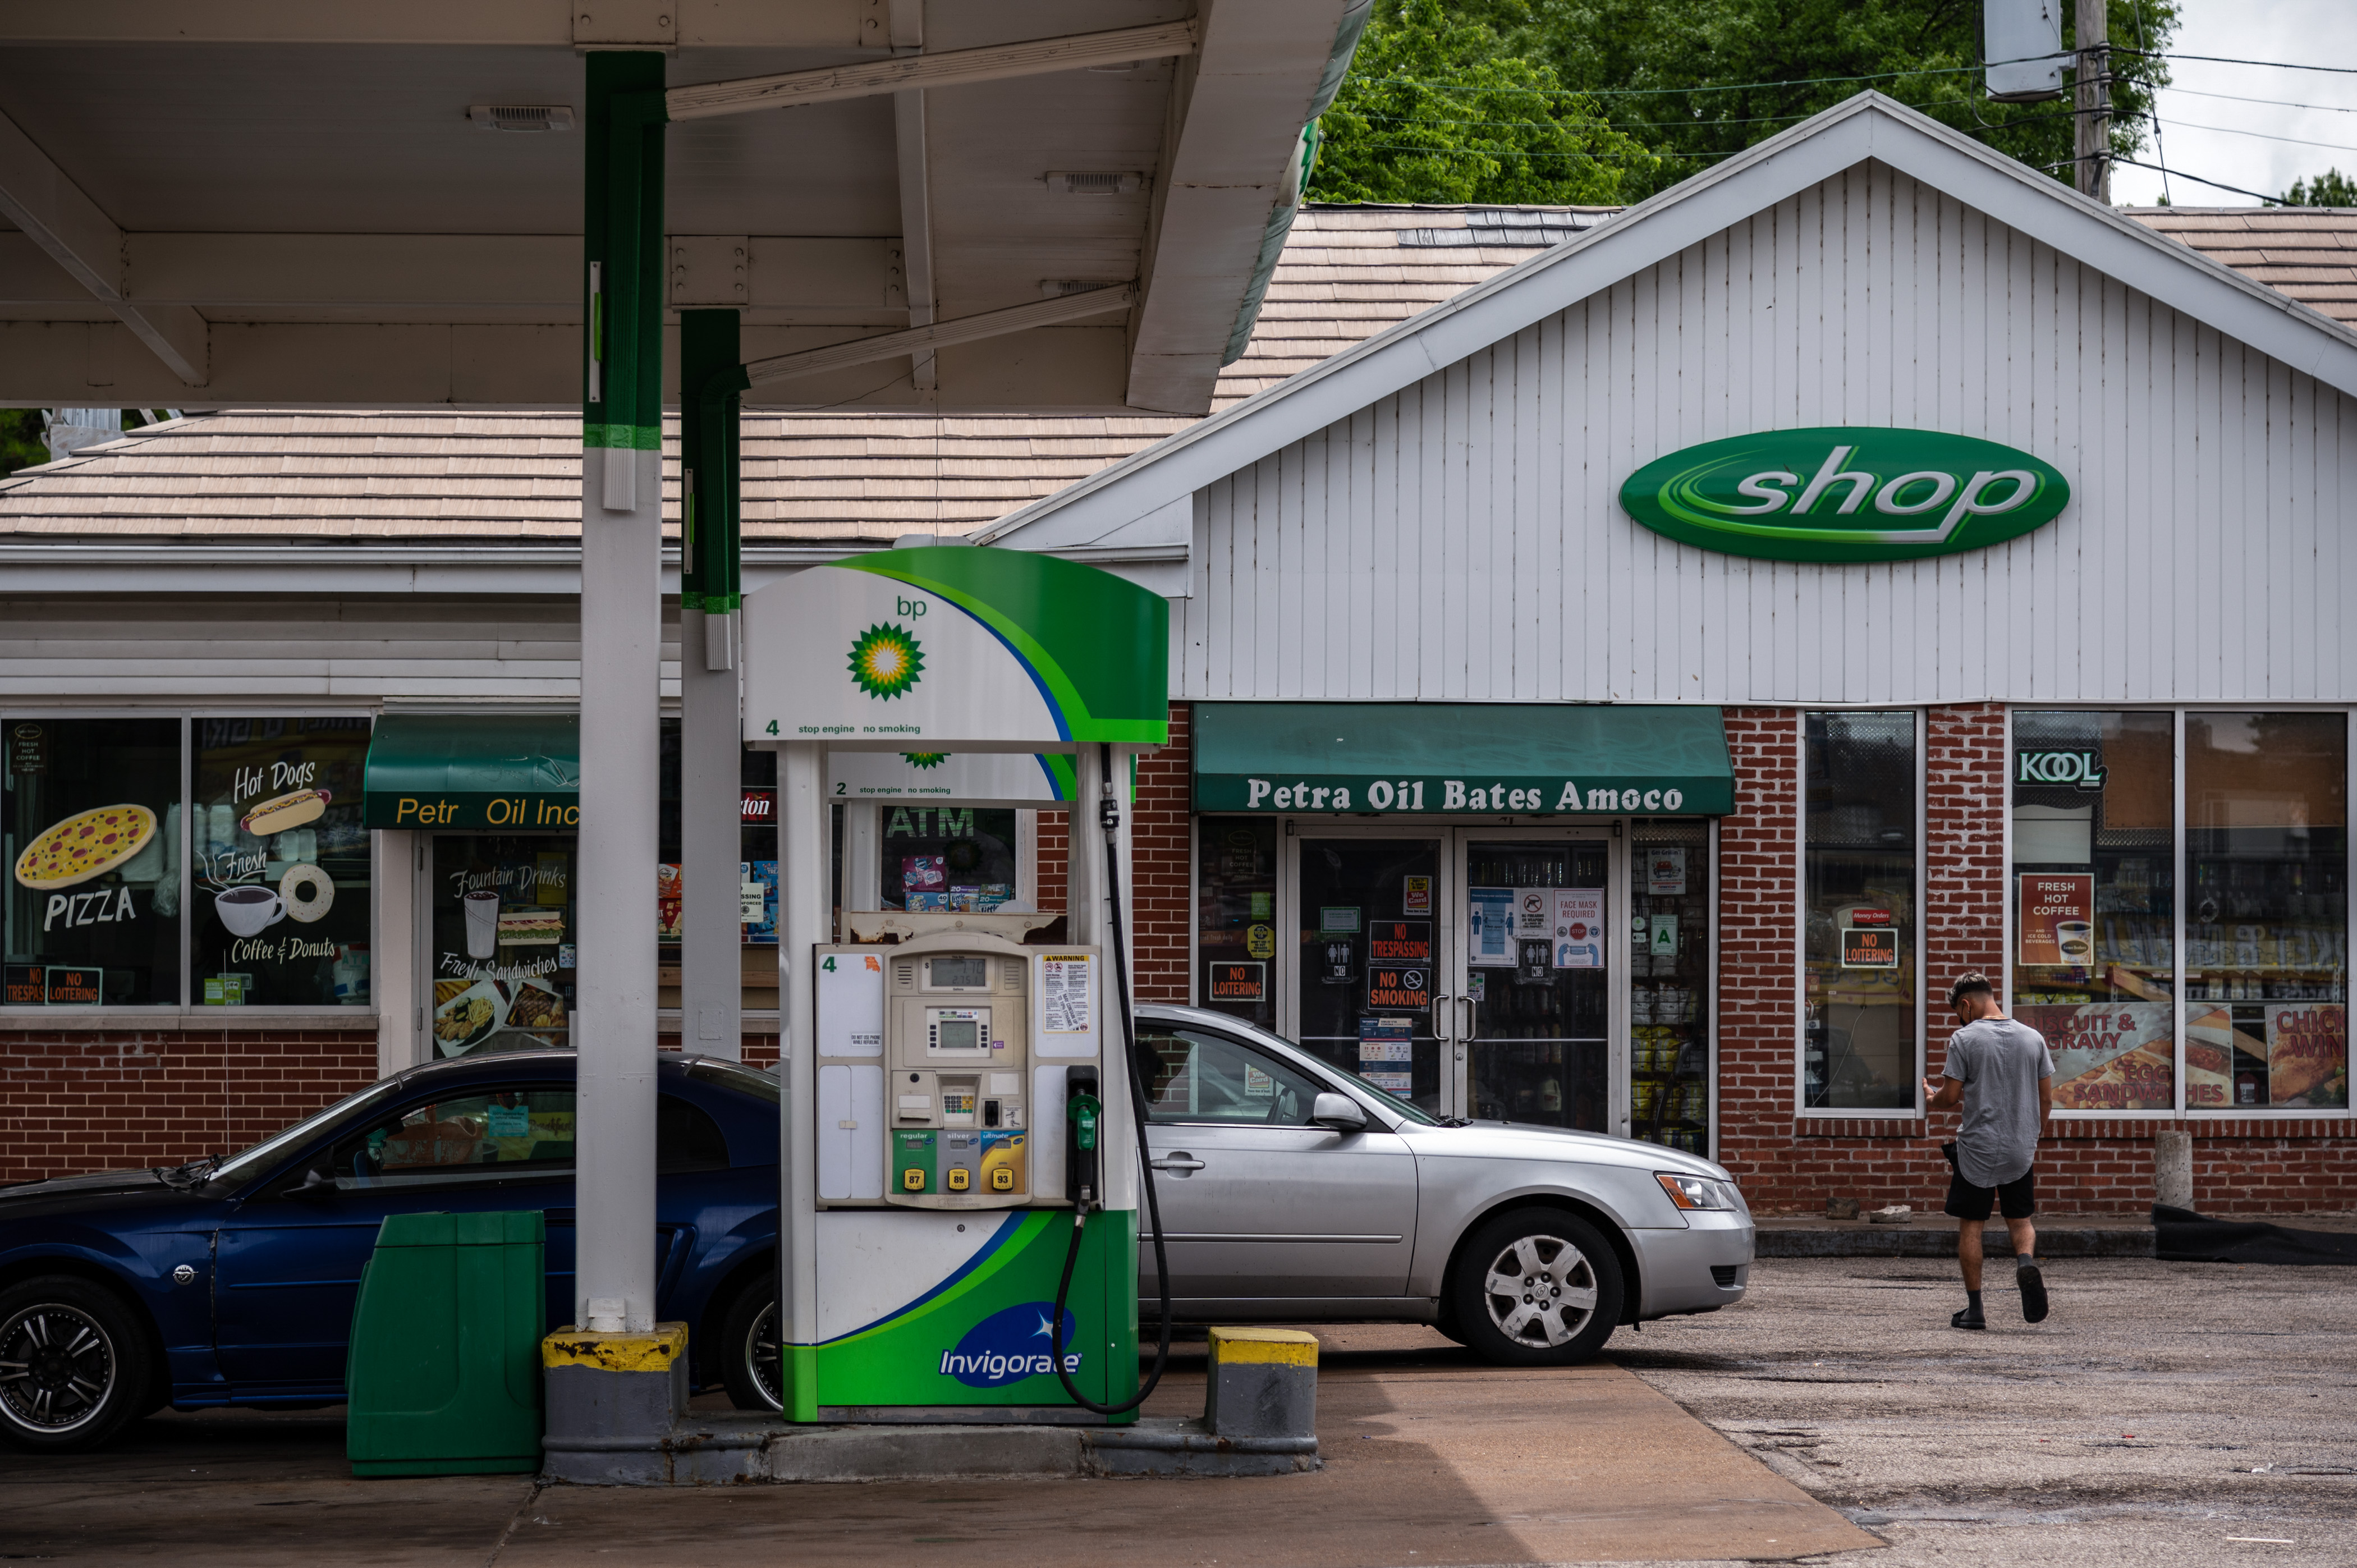 A BP gas station is seen along Bates Avenue on May 17, 2021 in St. Louis, Missouri. Photo by Michael B. Thomas for The Intercept